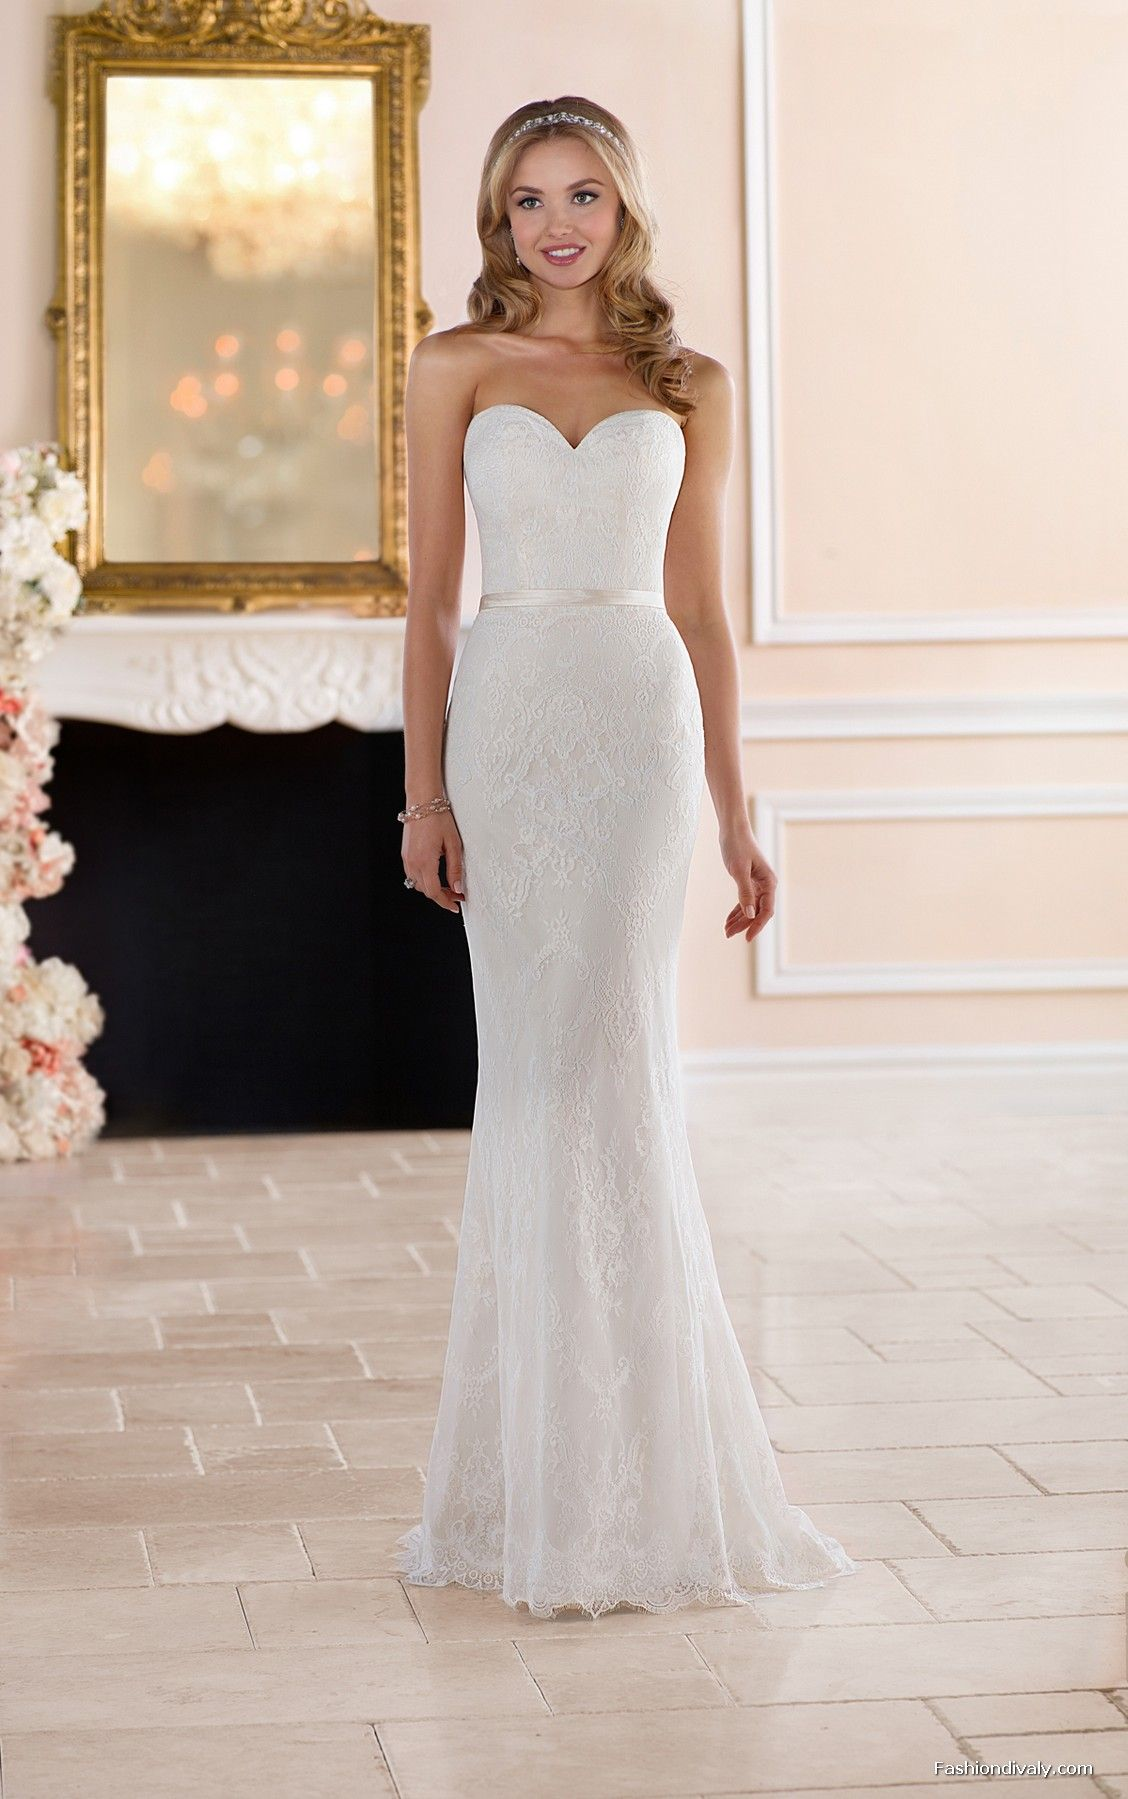 Stella york wedding dress 2018 new collections designer wedding stella york wedding dress 2018 new collections designer wedding dress tulle and lace wedding dress 20 junglespirit Image collections